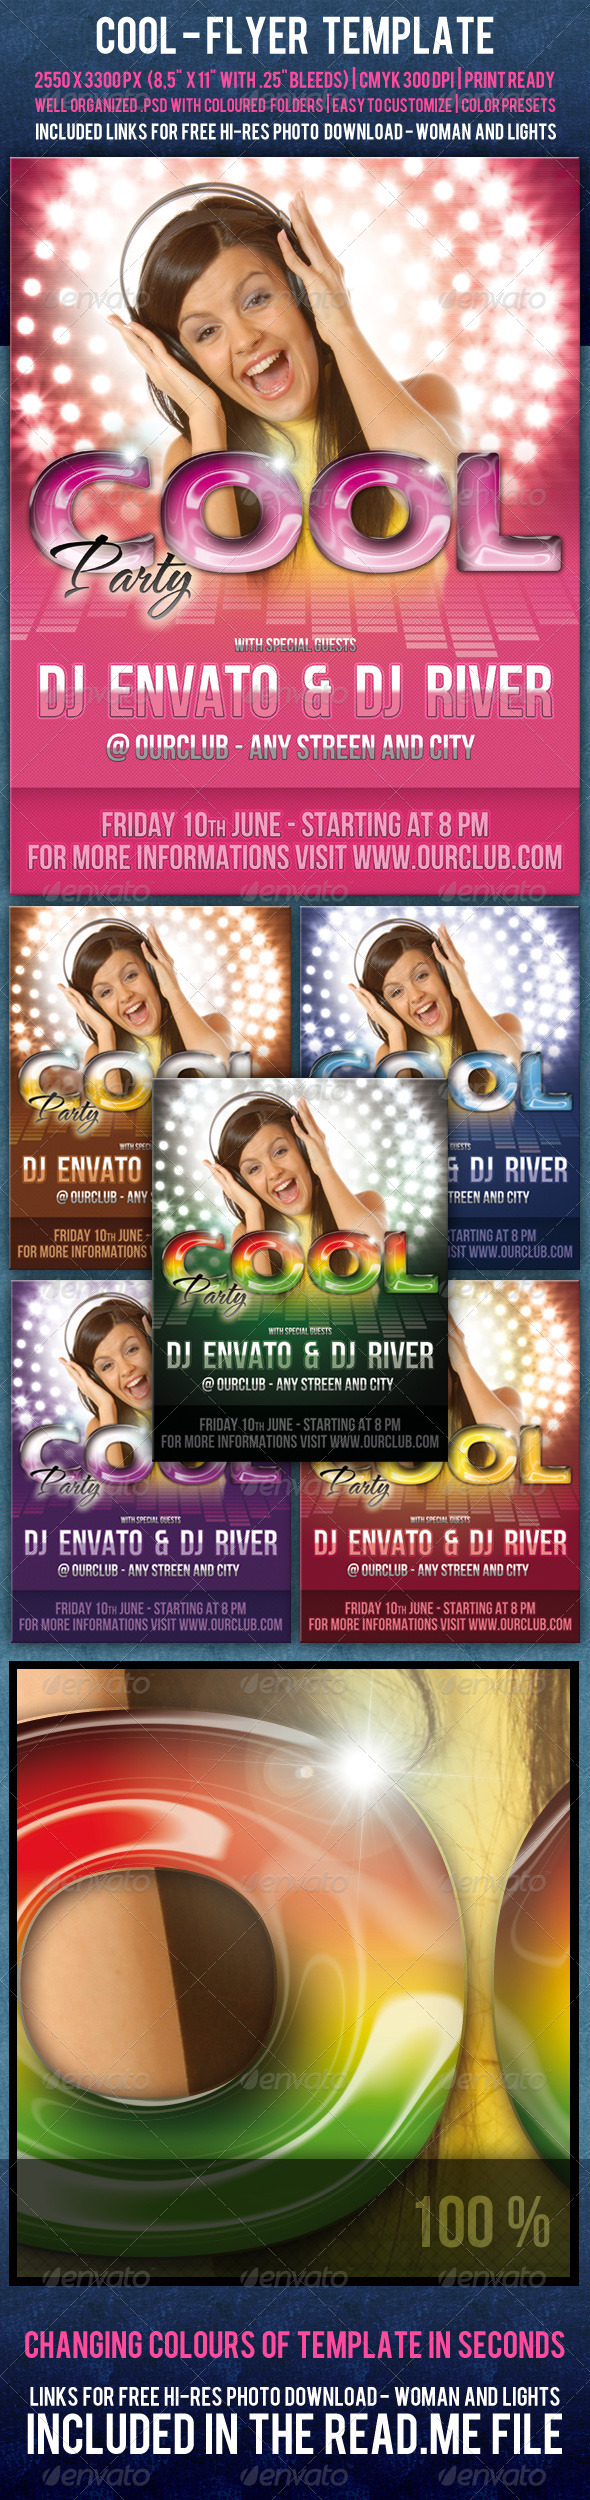 Cool Flyer Template - Clubs & Parties Events